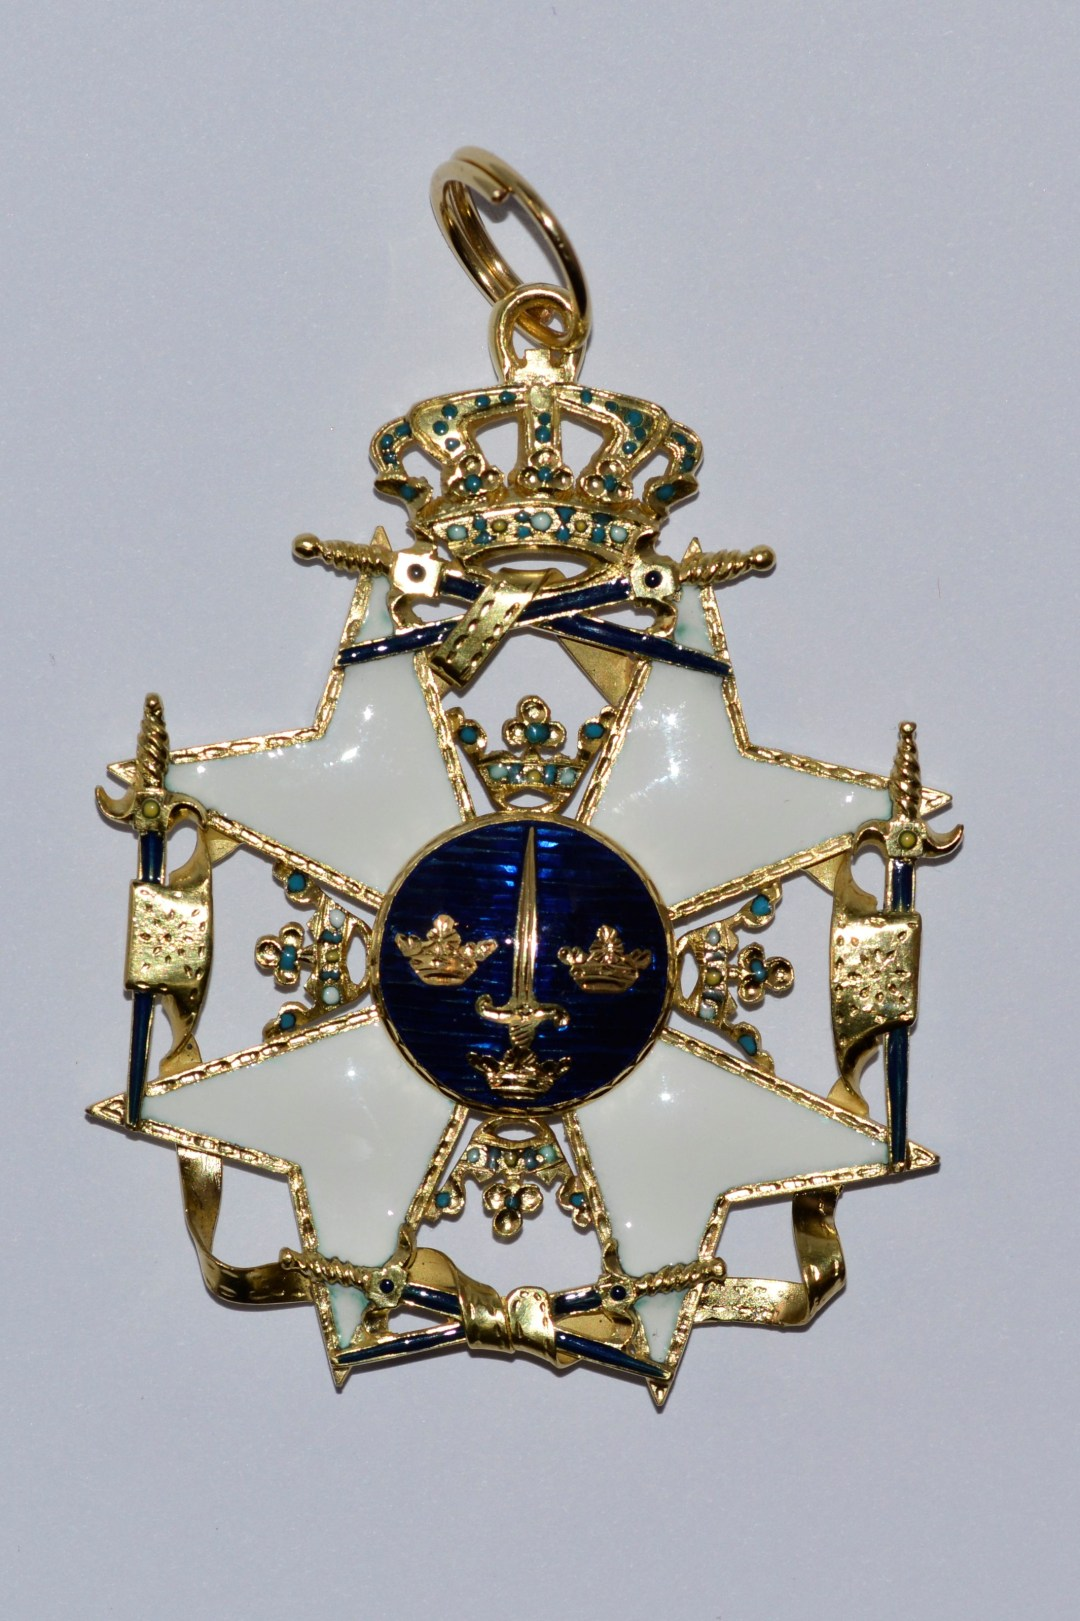 8. Official Reproduction, Commanders Cross, Order of the Sword